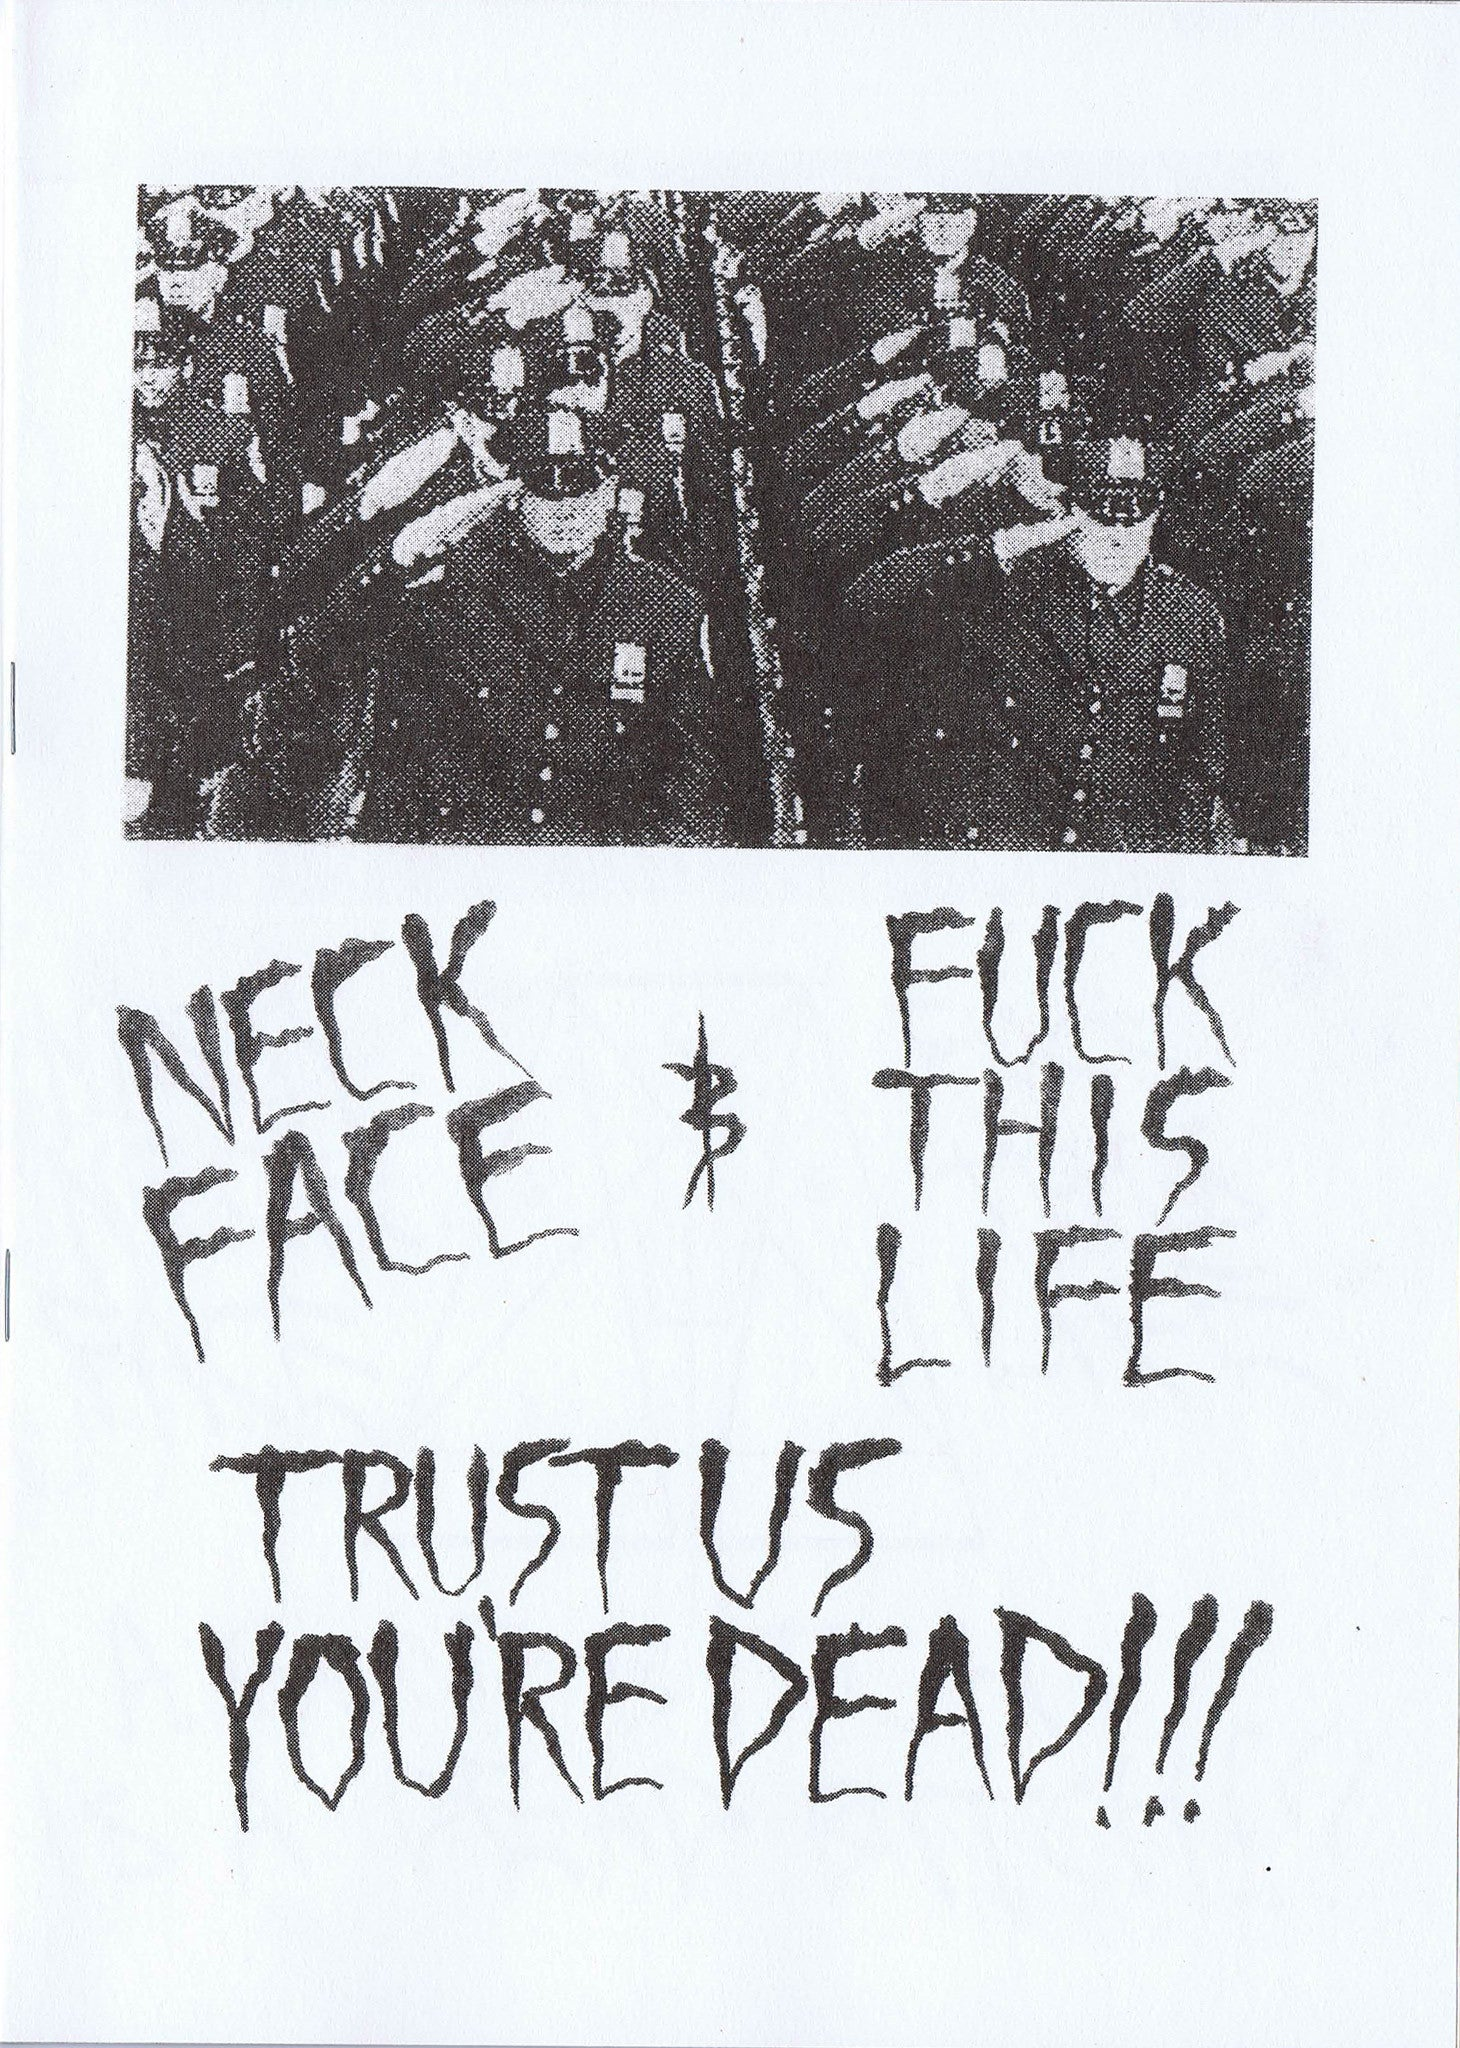 NECKFACE & FTL. Trust Us You're Dead!!!